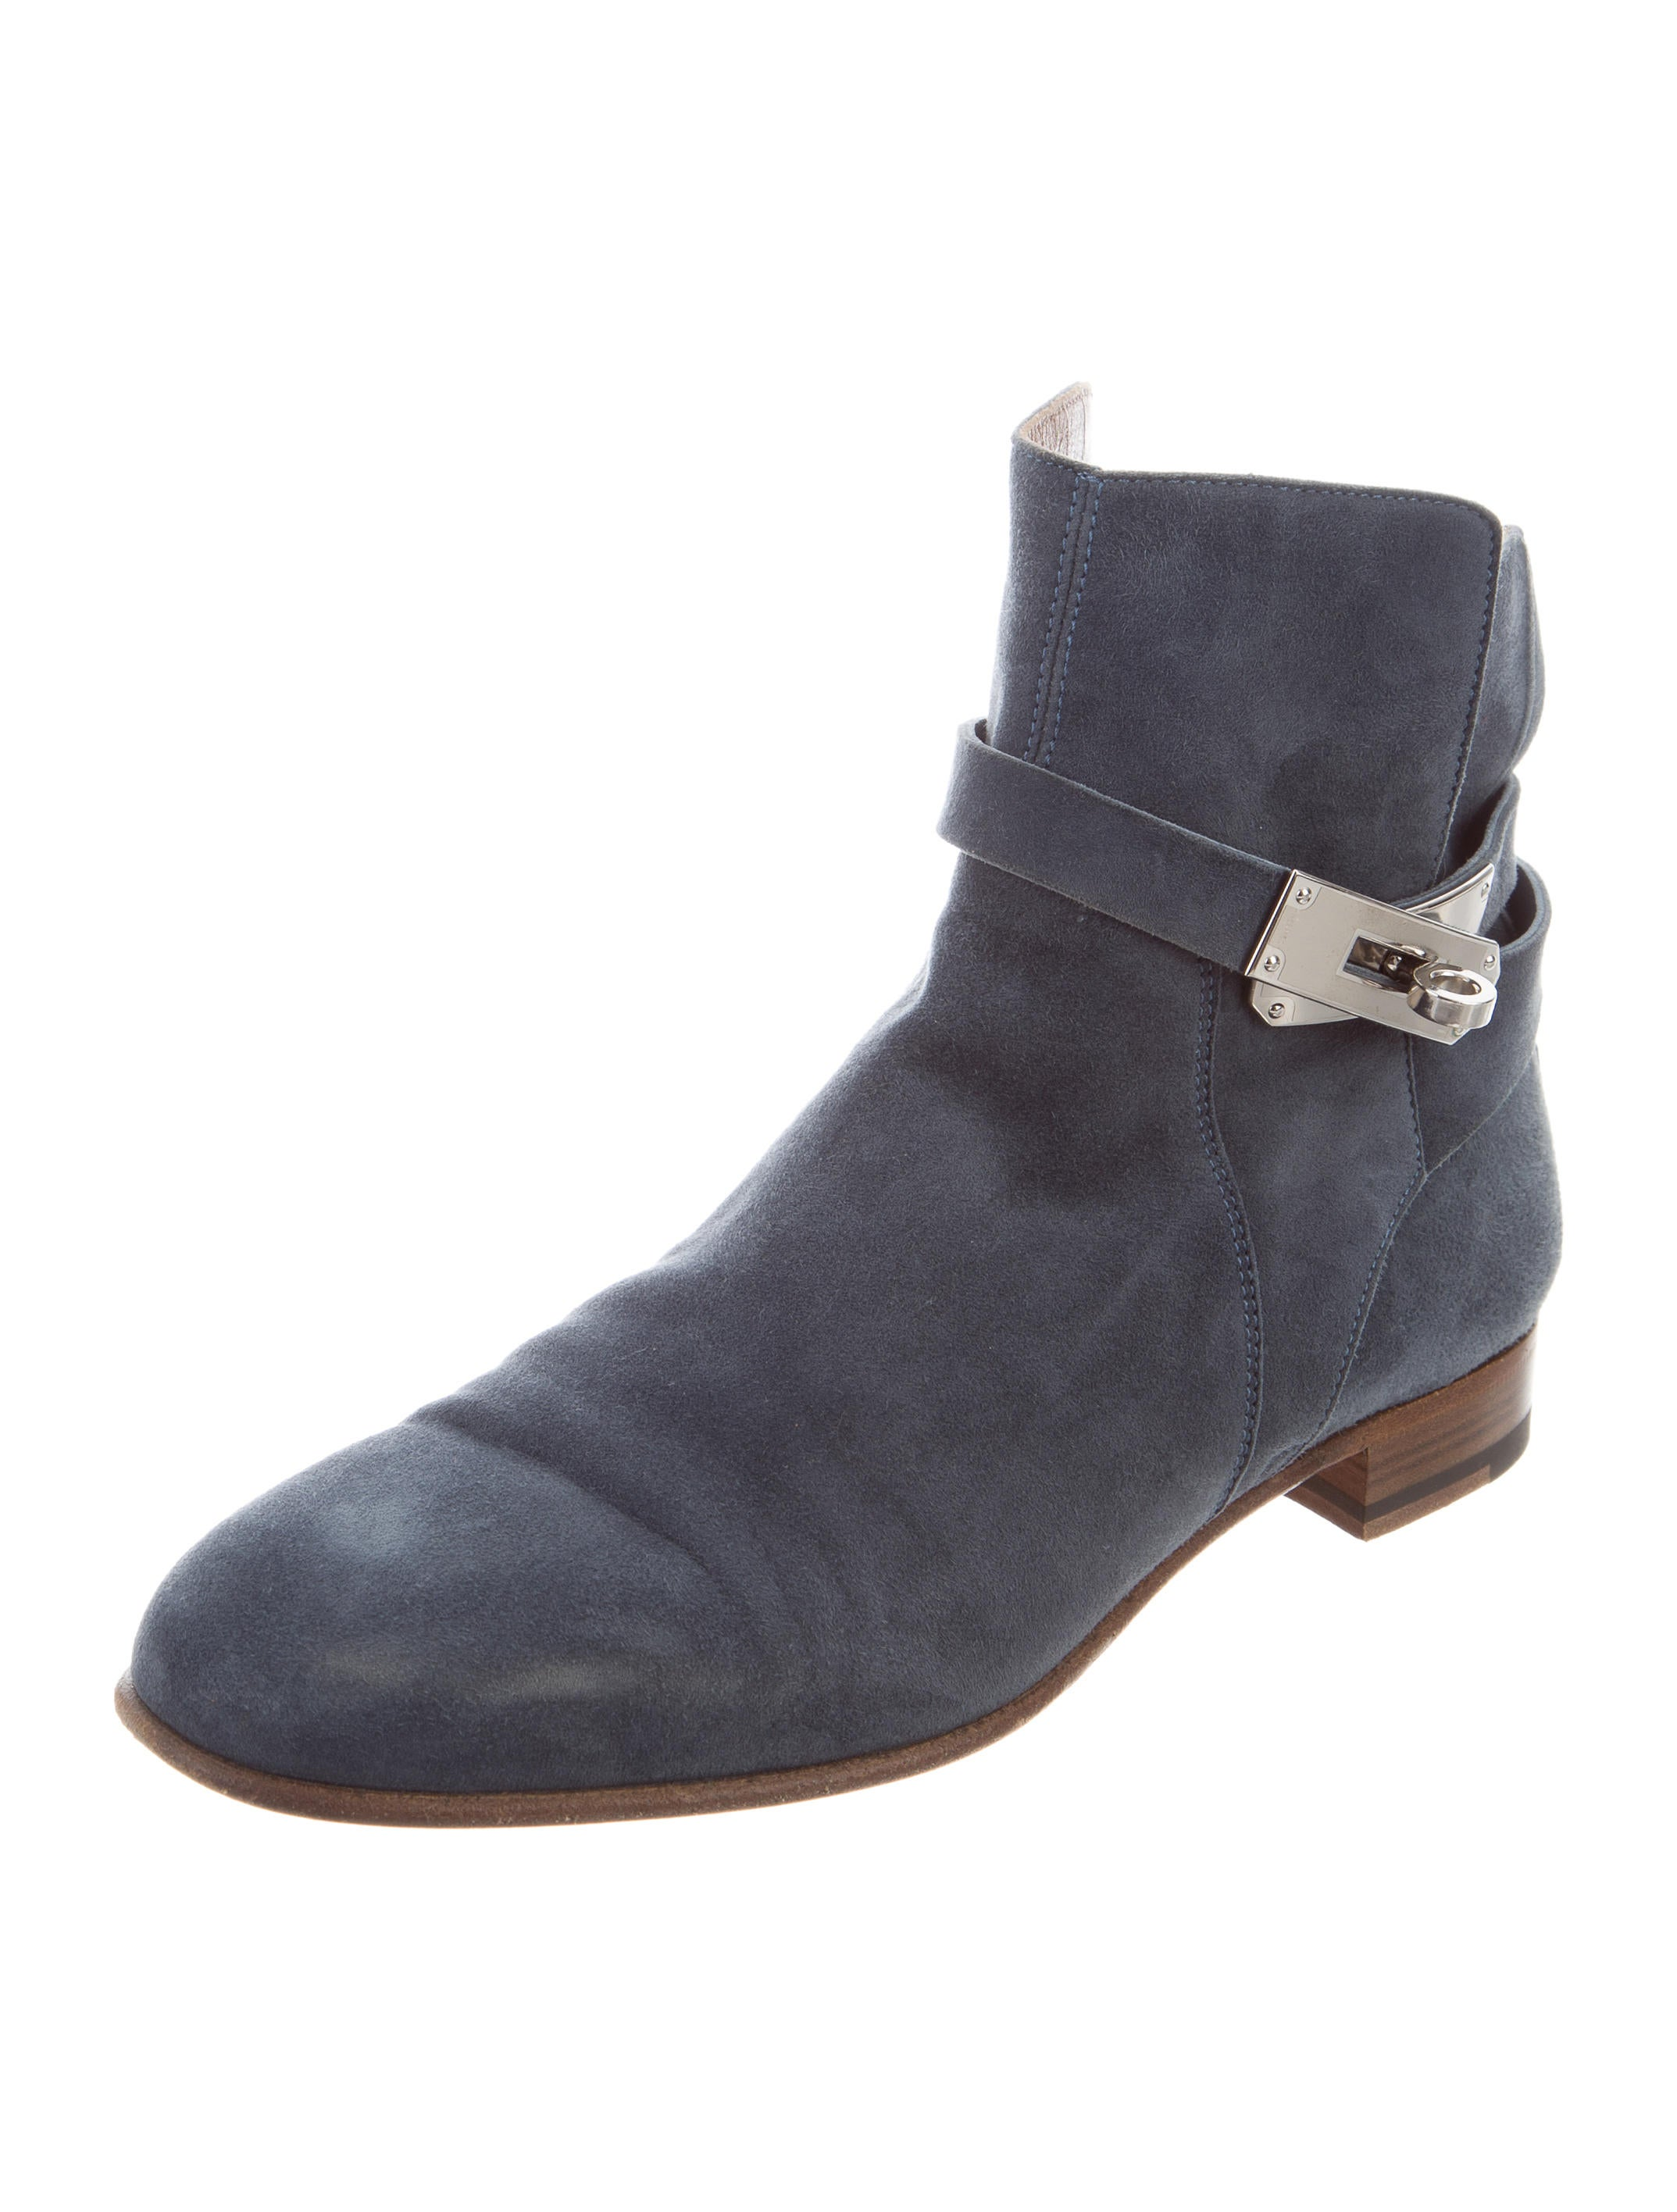 Hermès Neo Suede Round-Toe Ankle Boots cheap wholesale price outlet wide range of NZ7bLbZTe